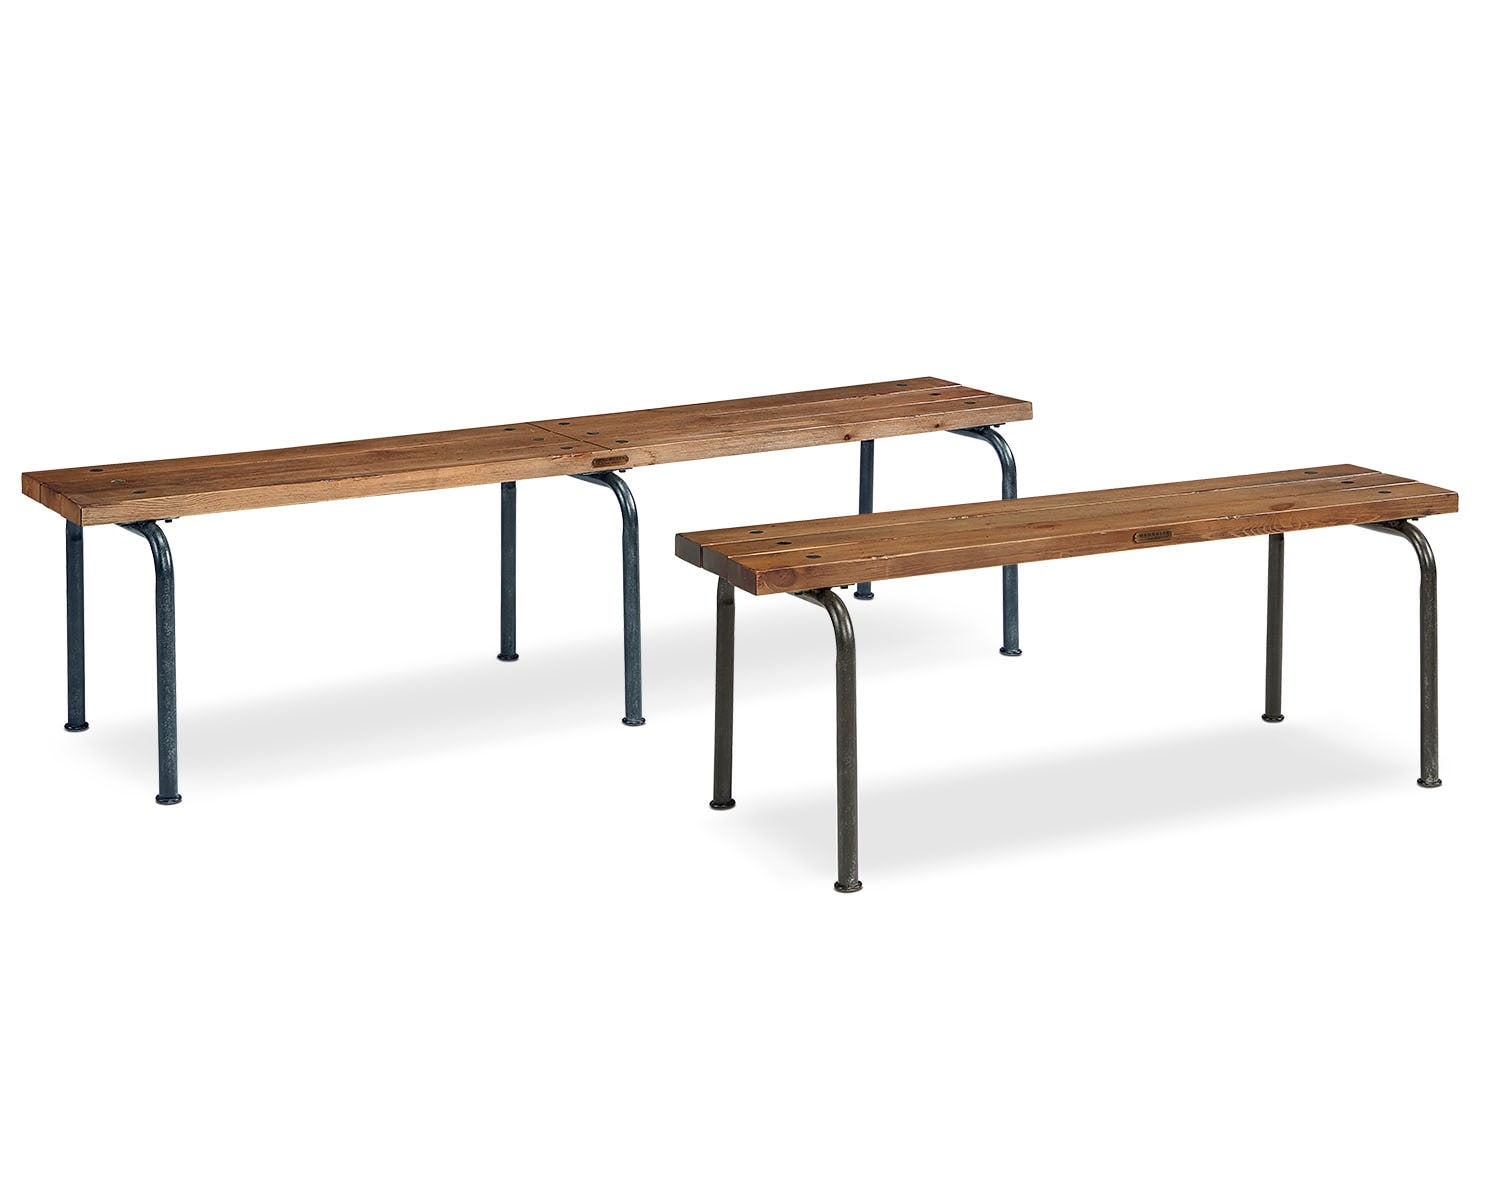 The Rustic Plank Bench Collection